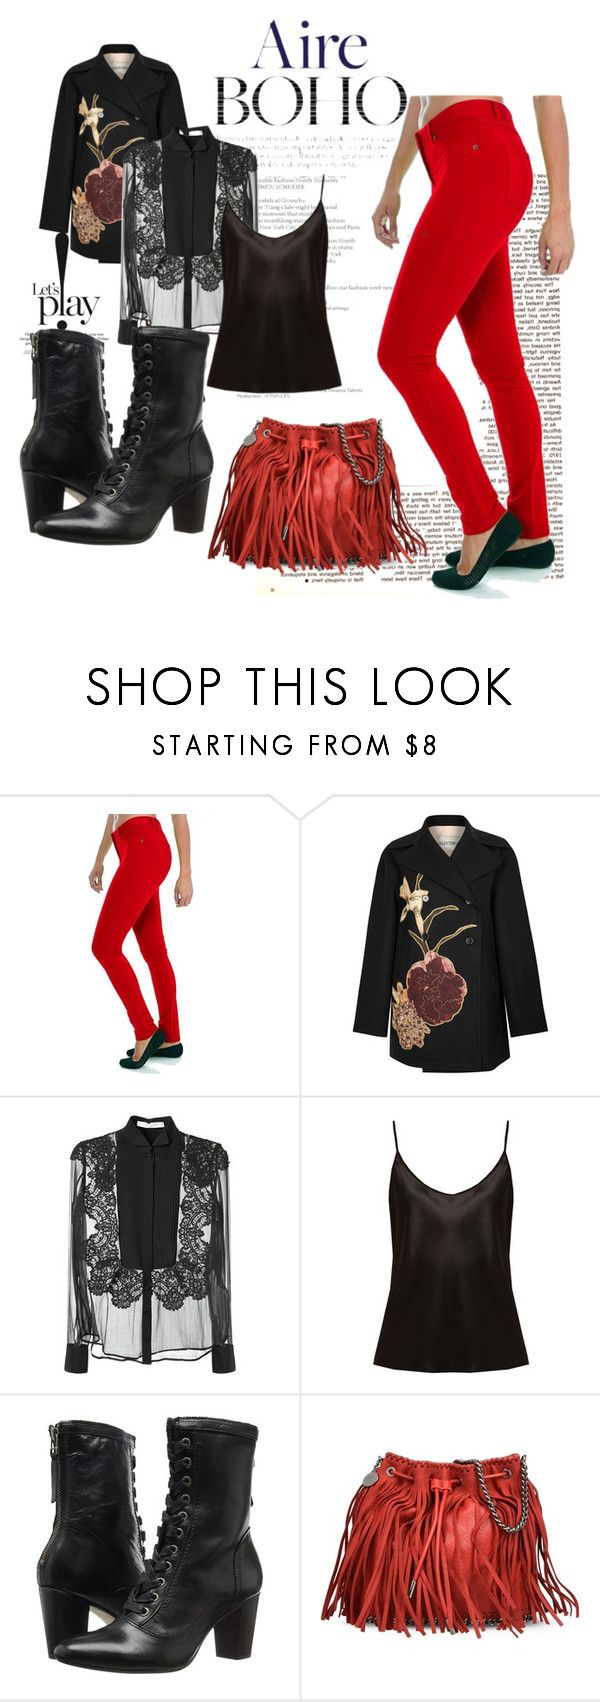 Aire Boho by sweatinstyle on Polyvore featuring Givenchy, La Perla, Valentino, Johnston & Murphy, Fashion Outlet NYC, and STELLA McCARTNEY